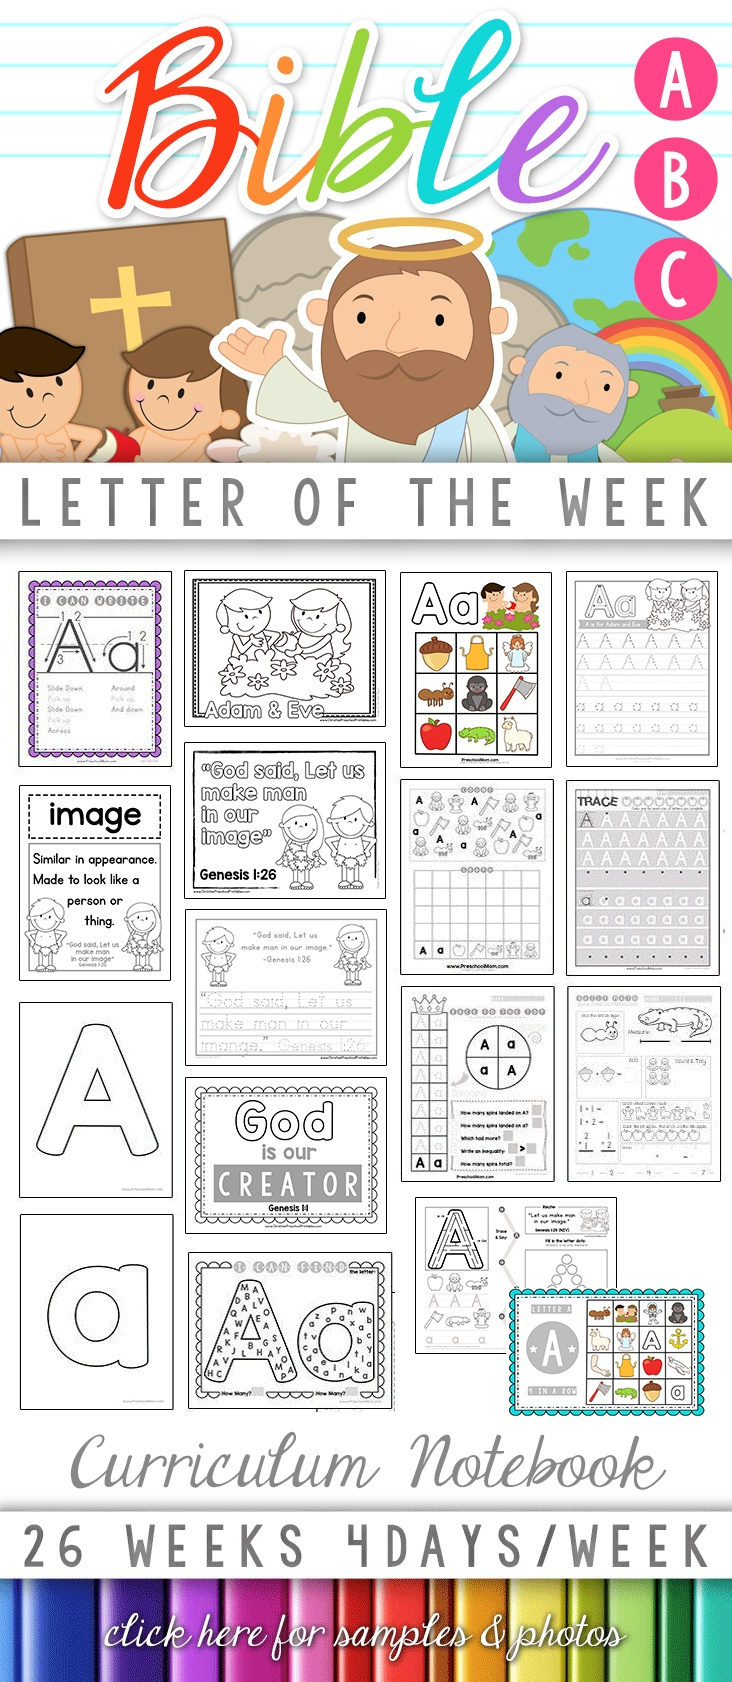 Bible Abc Printables - Christian Preschool Printables - Bible Lessons For Toddlers Free Printable